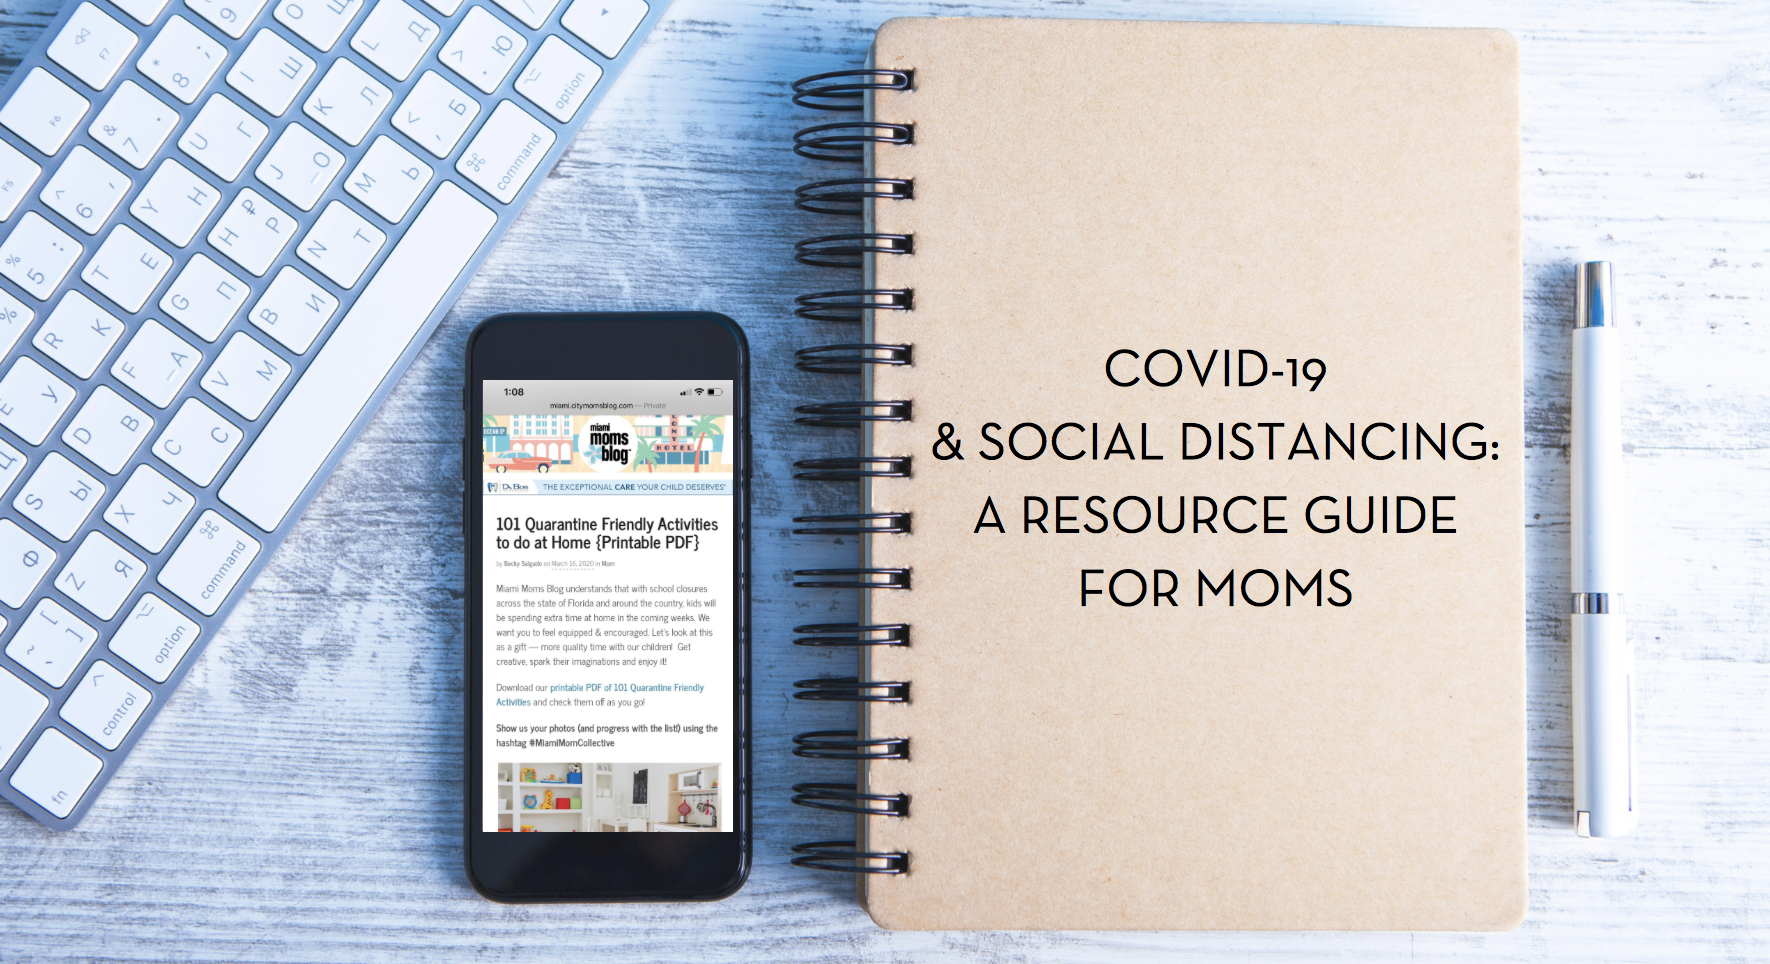 COVID-19 Coronavirus & Social Distancing: A Resource Guide for Moms Miami Moms Blog